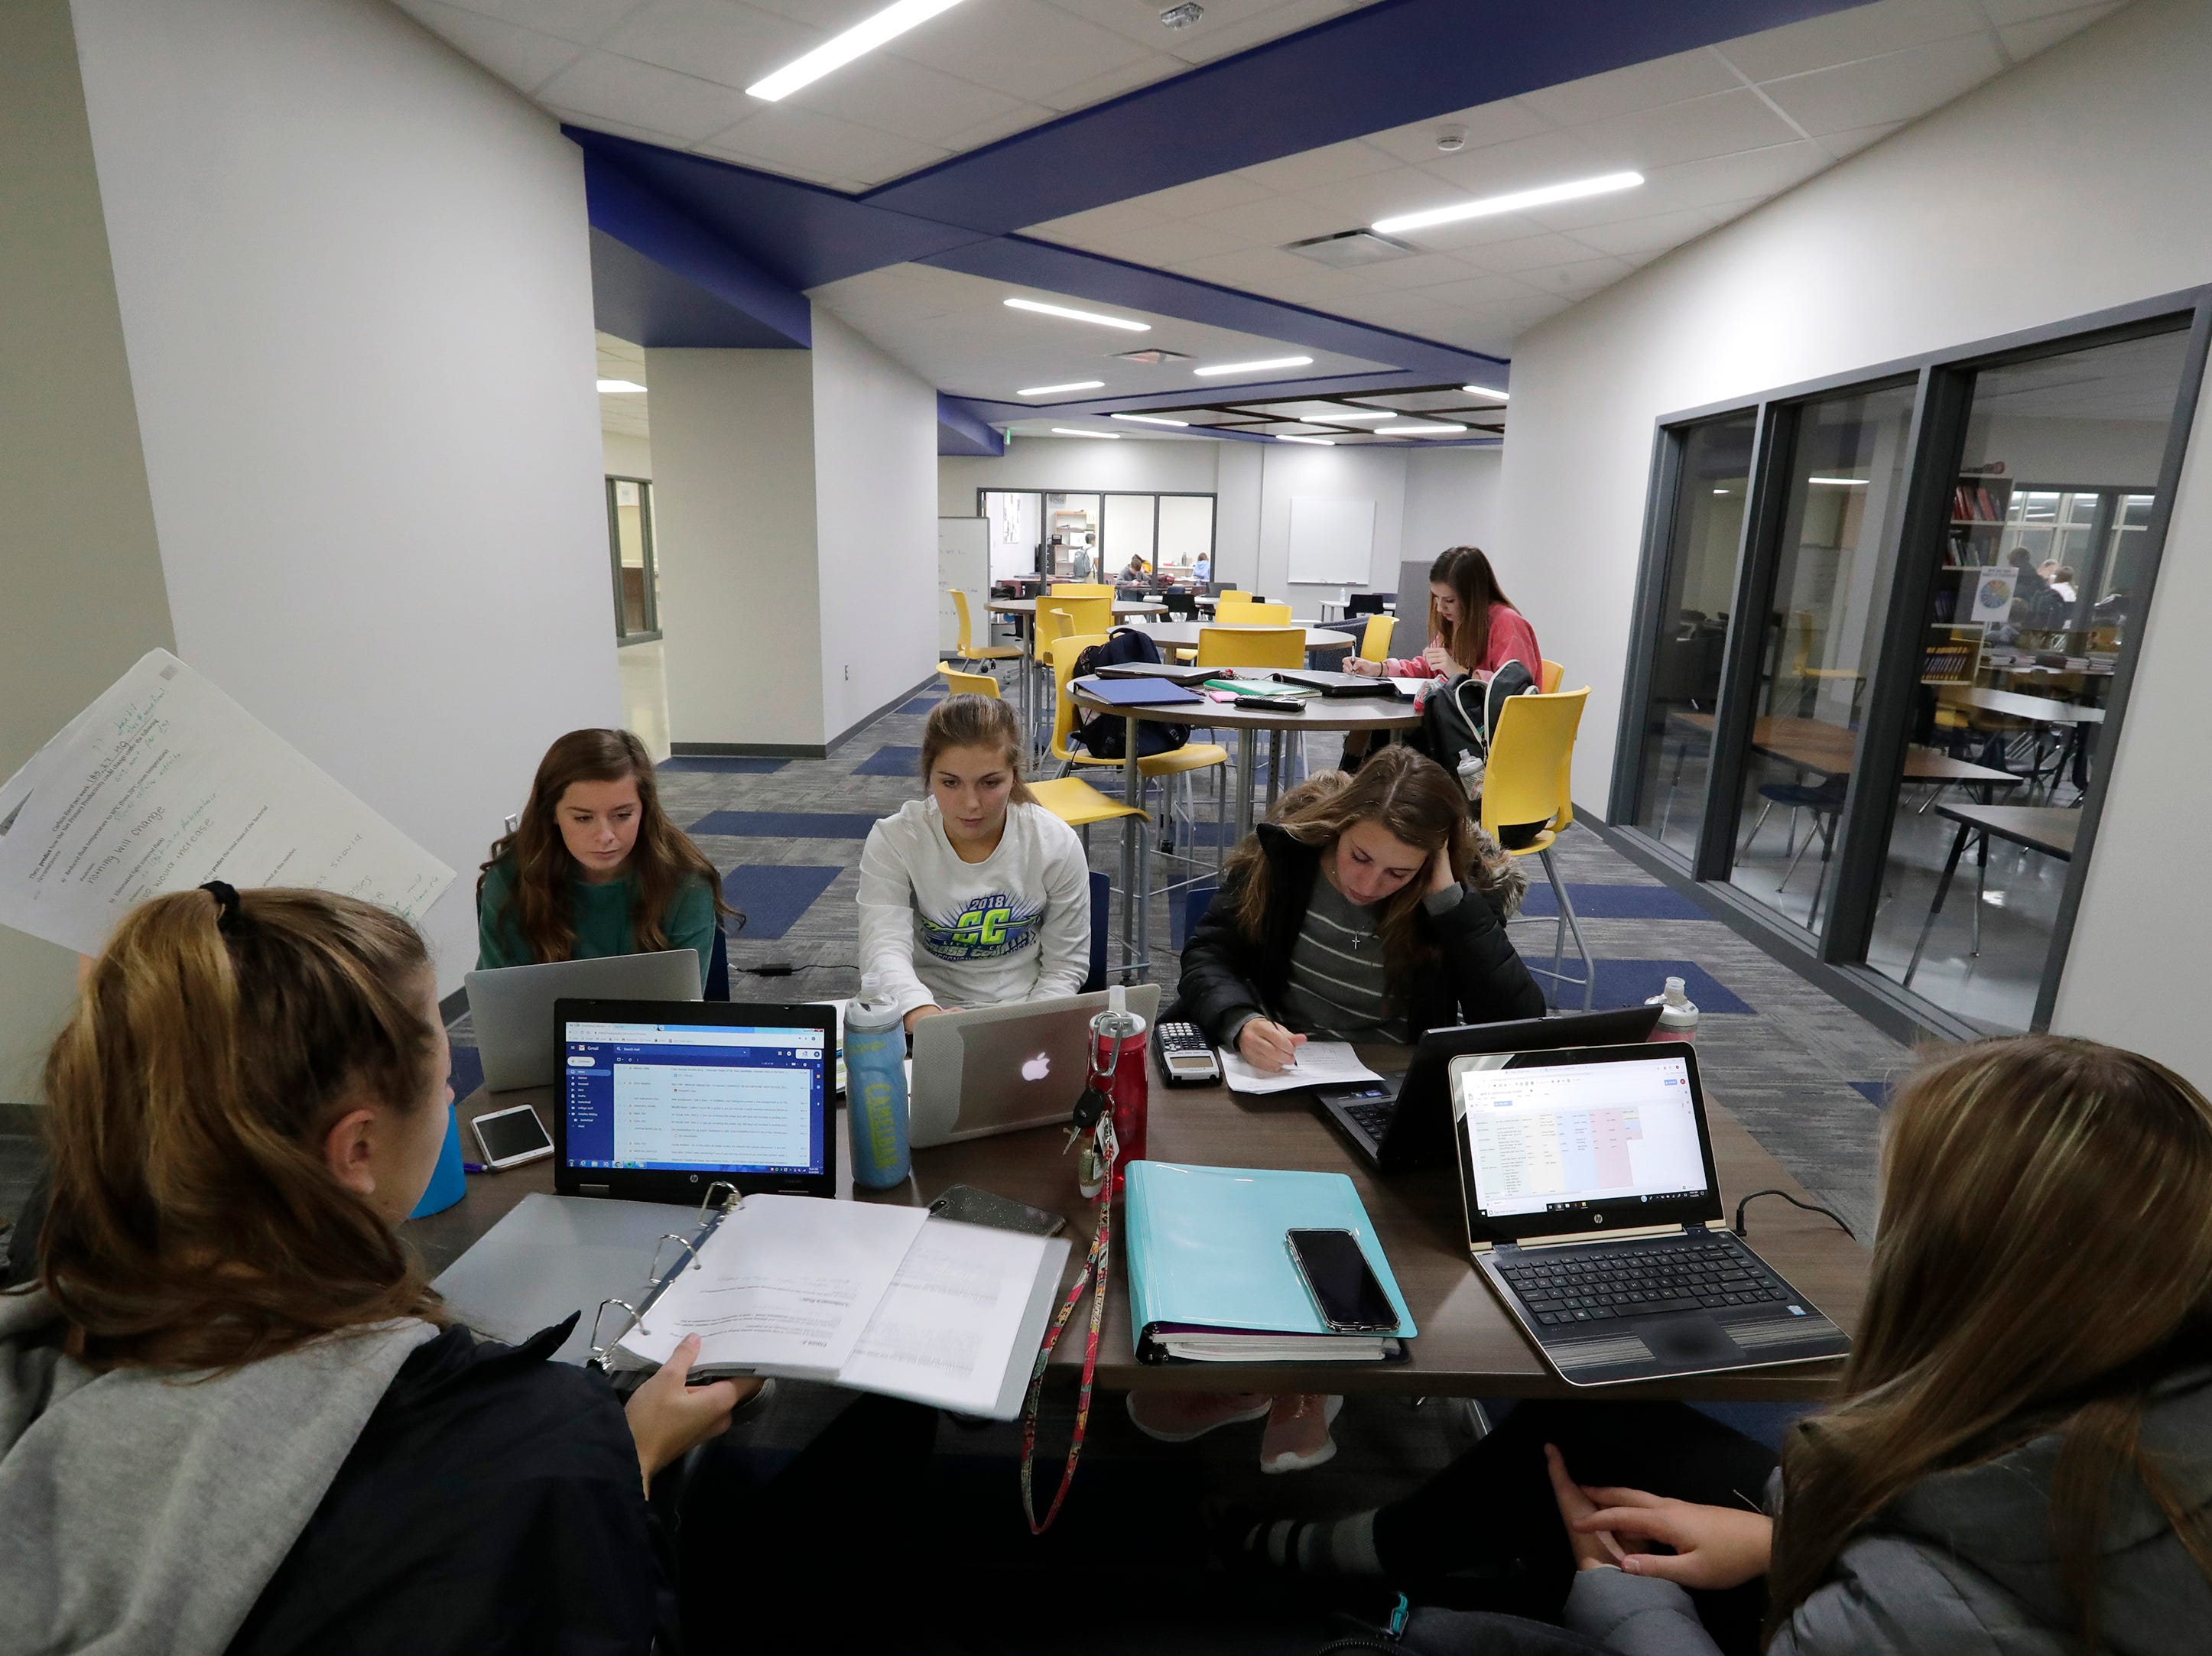 A group of senior students hangout in a collaboration area at Little Chute High School Tuesday, November 6, 2018, in Little Chute, Wis. The areas are for students and teachers to work together in small groups in a comfortable space